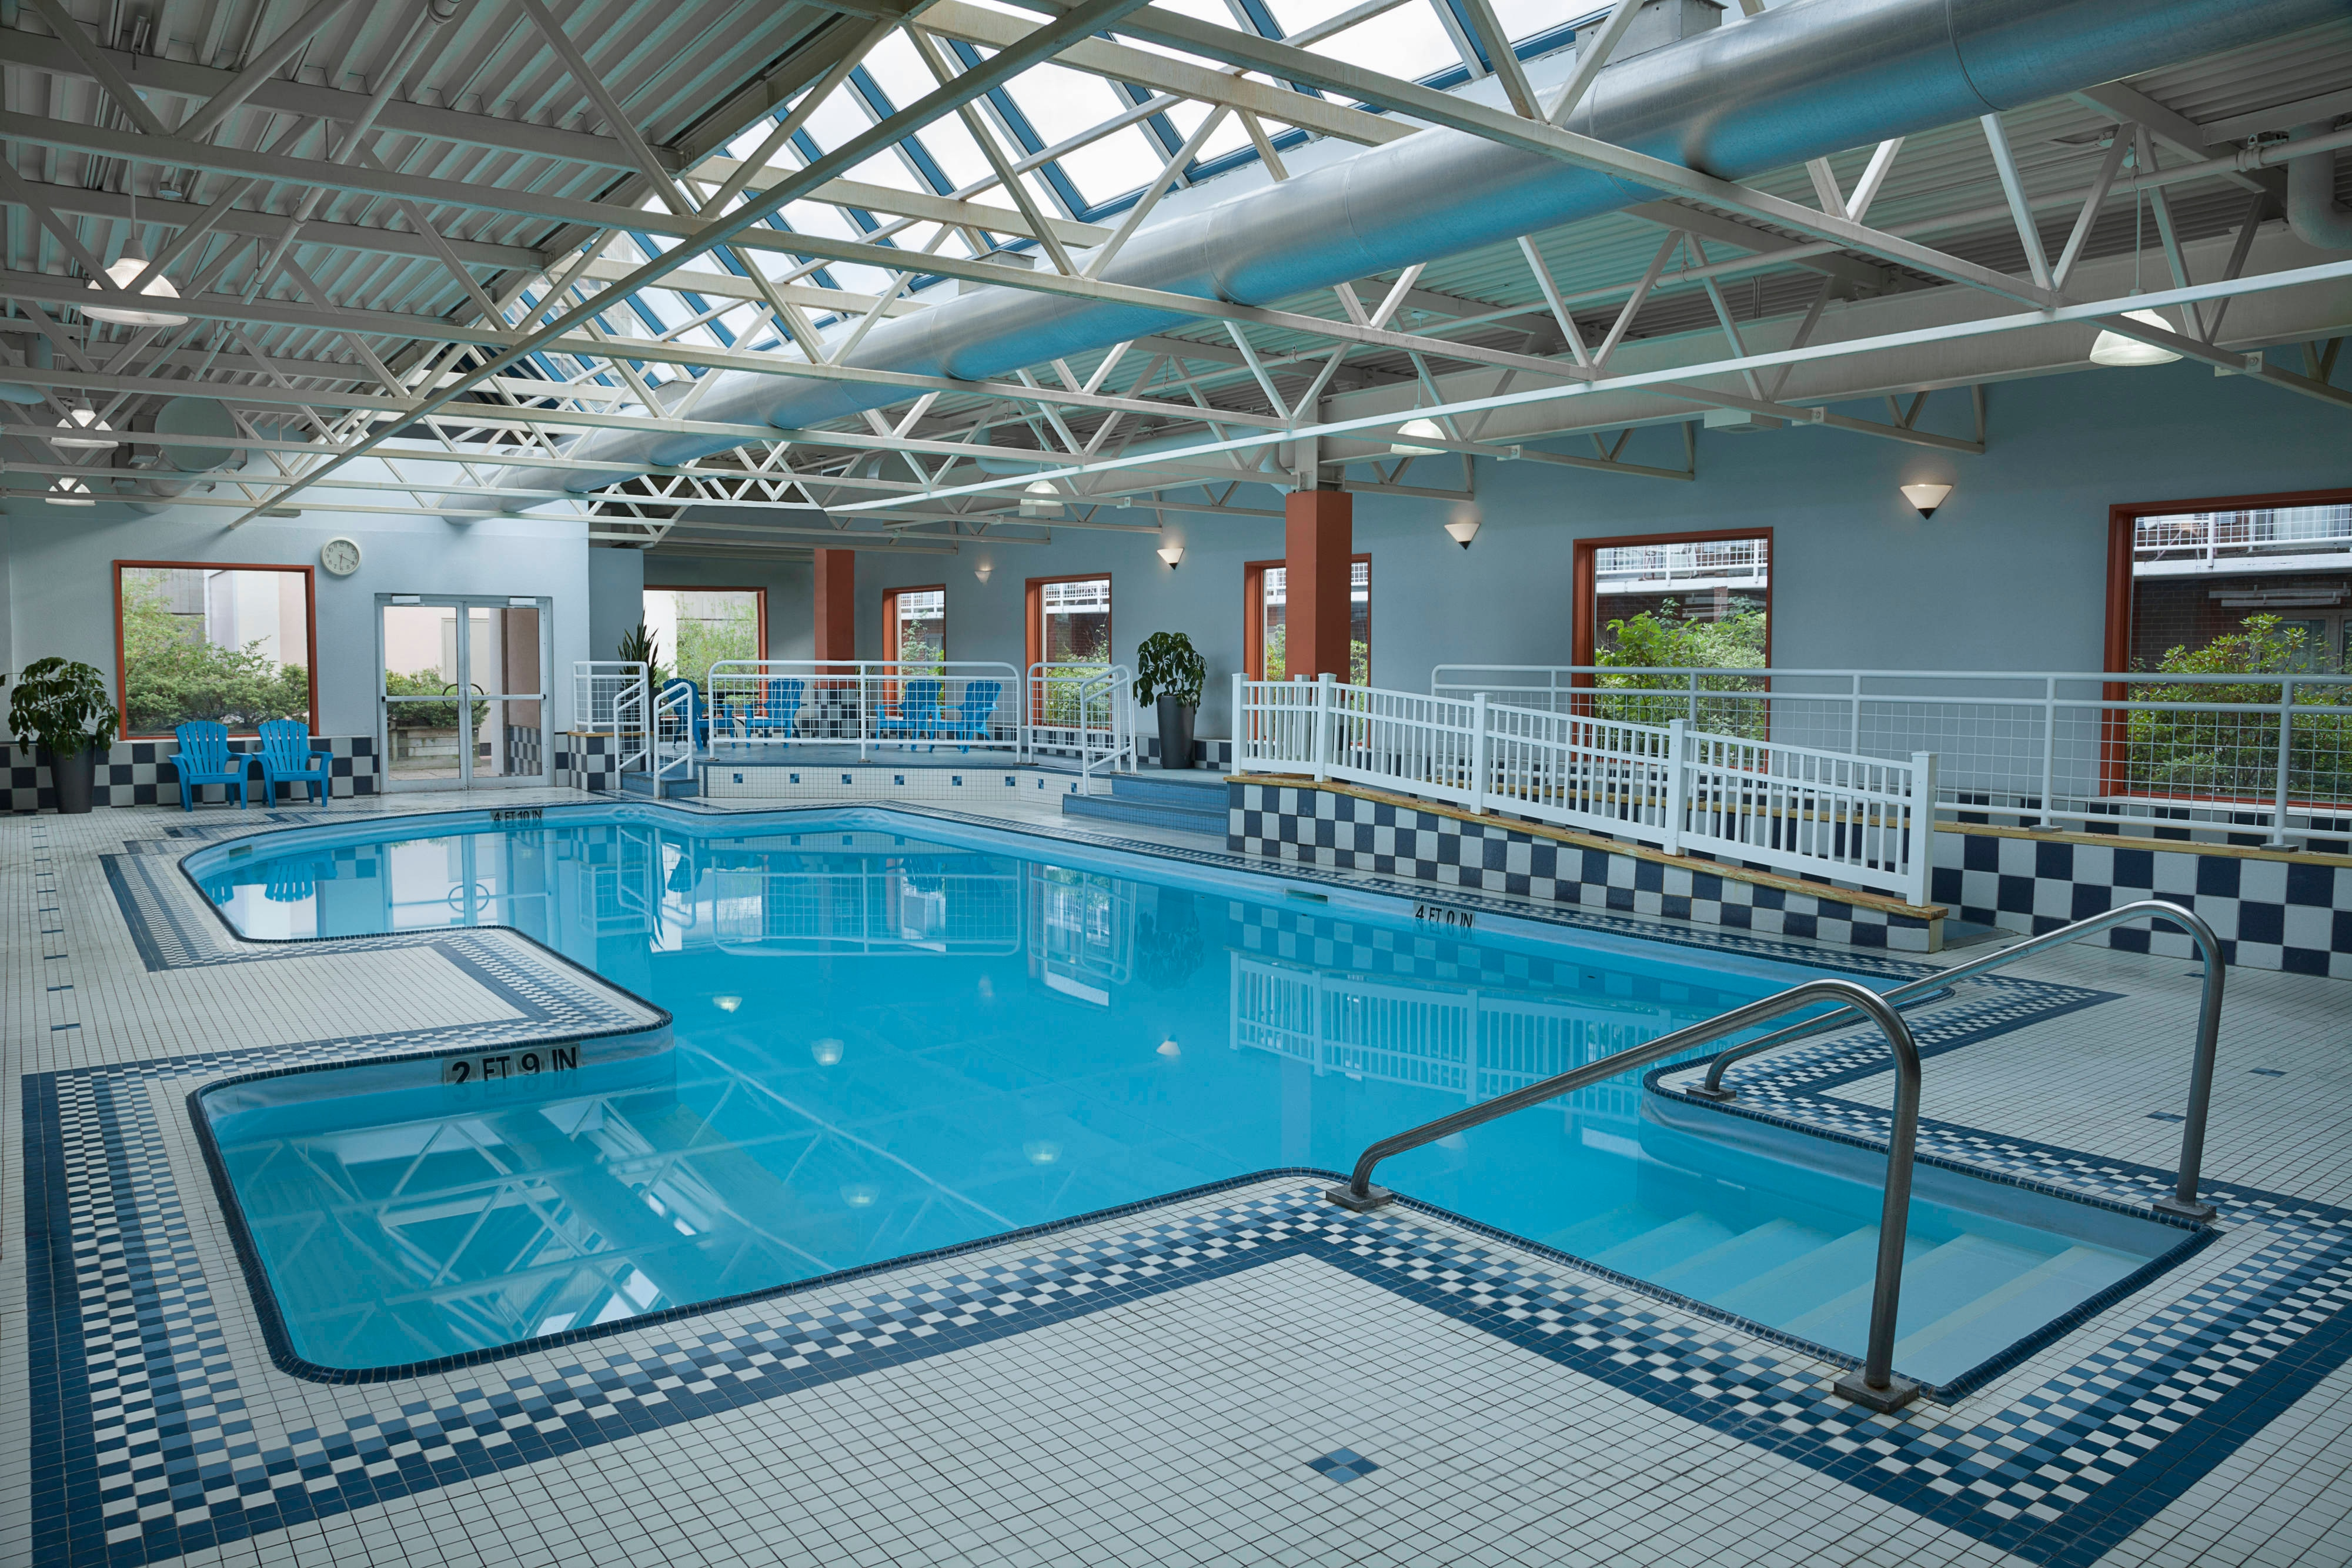 Enjoy our indoor heated pool with access to the rooftop deck.